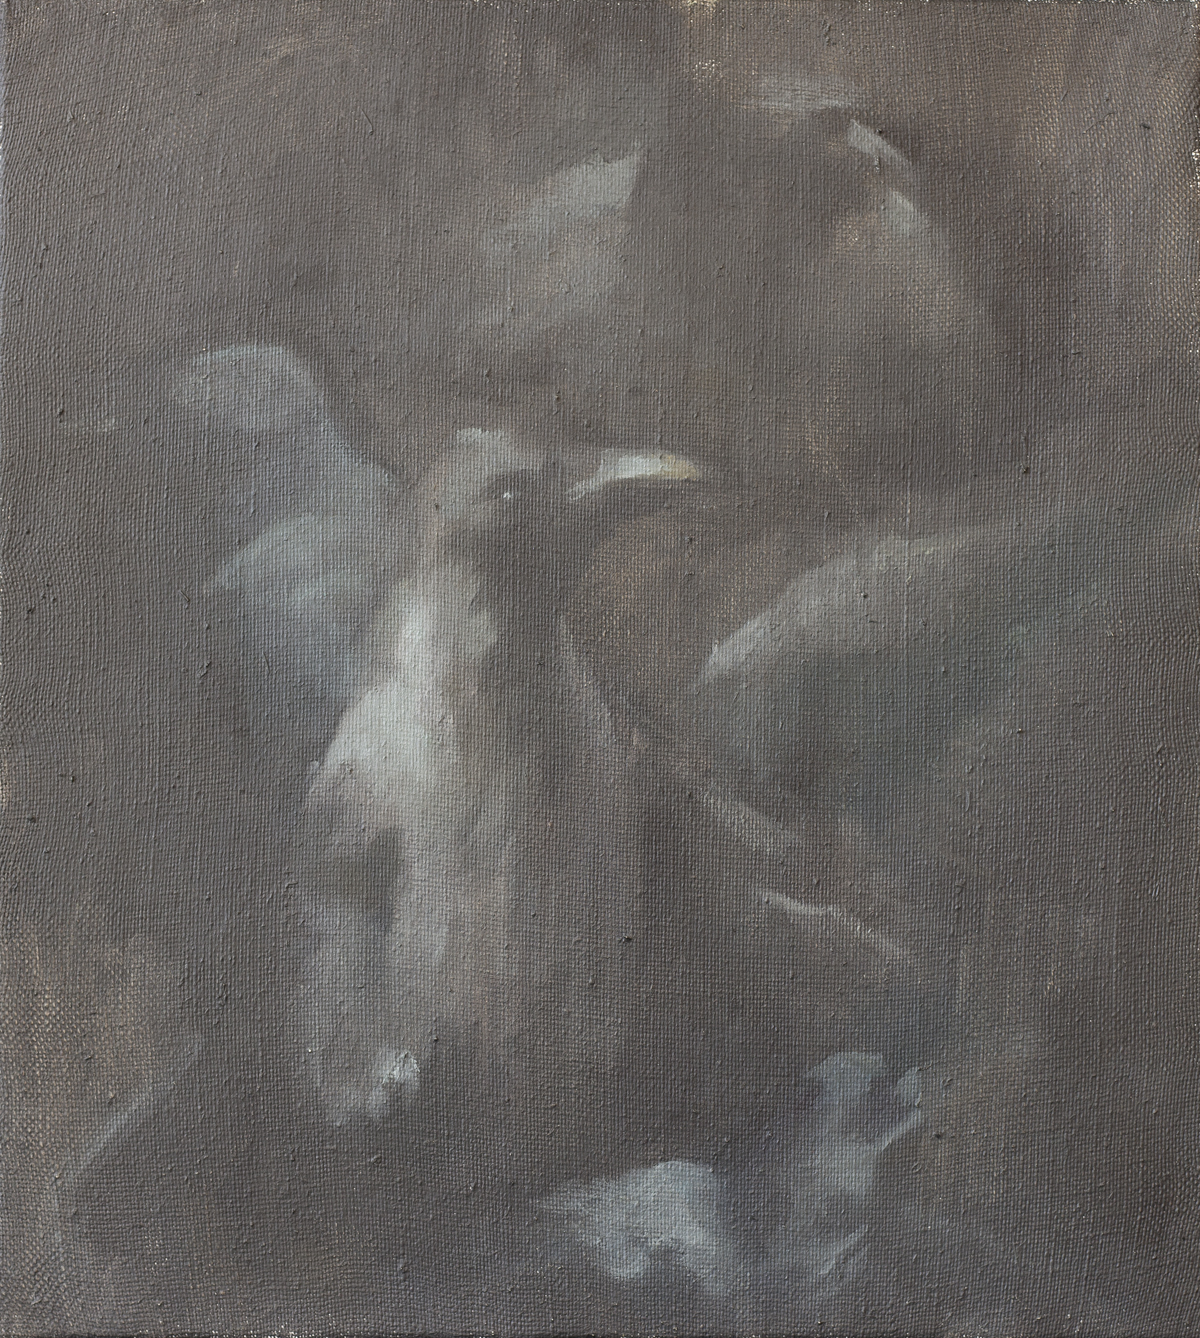 Birds II, Oil on Canvas, 2012